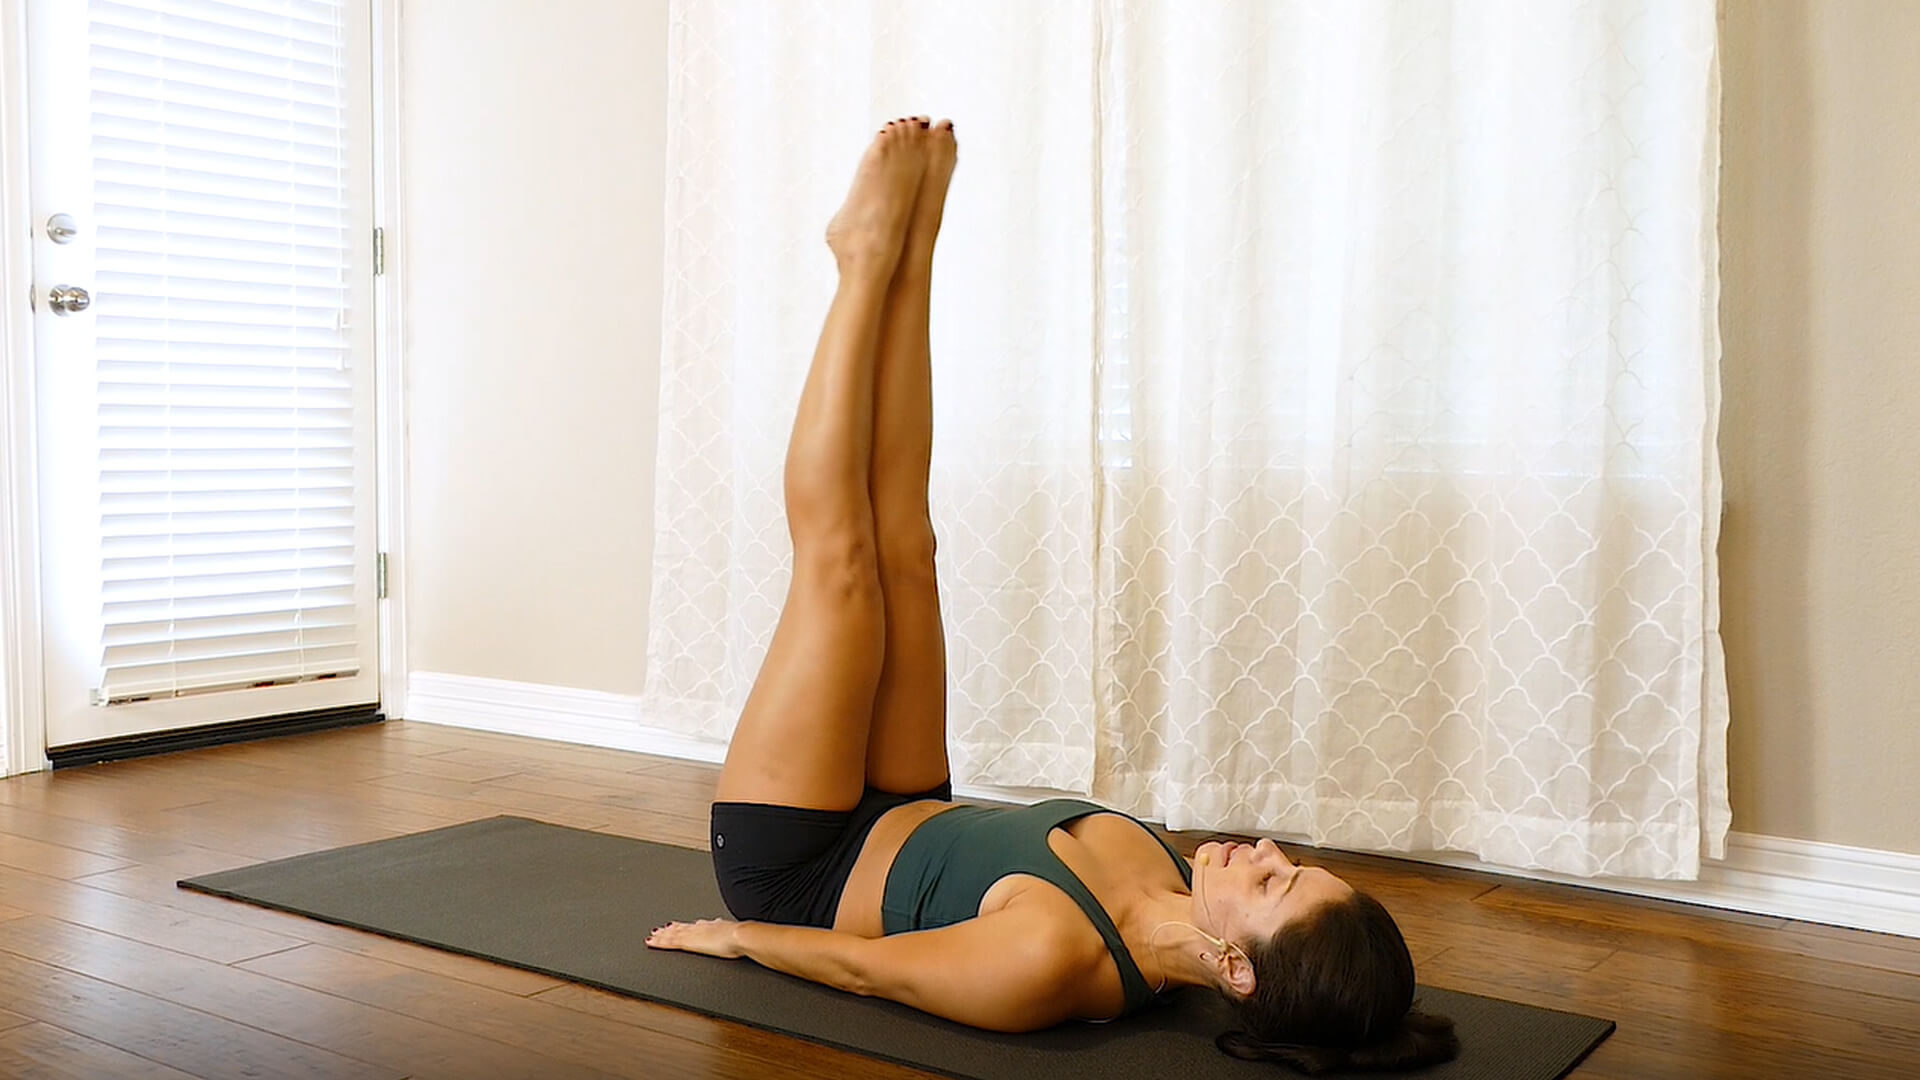 What exercises target upper glutes - 7 best upper glutes exercises